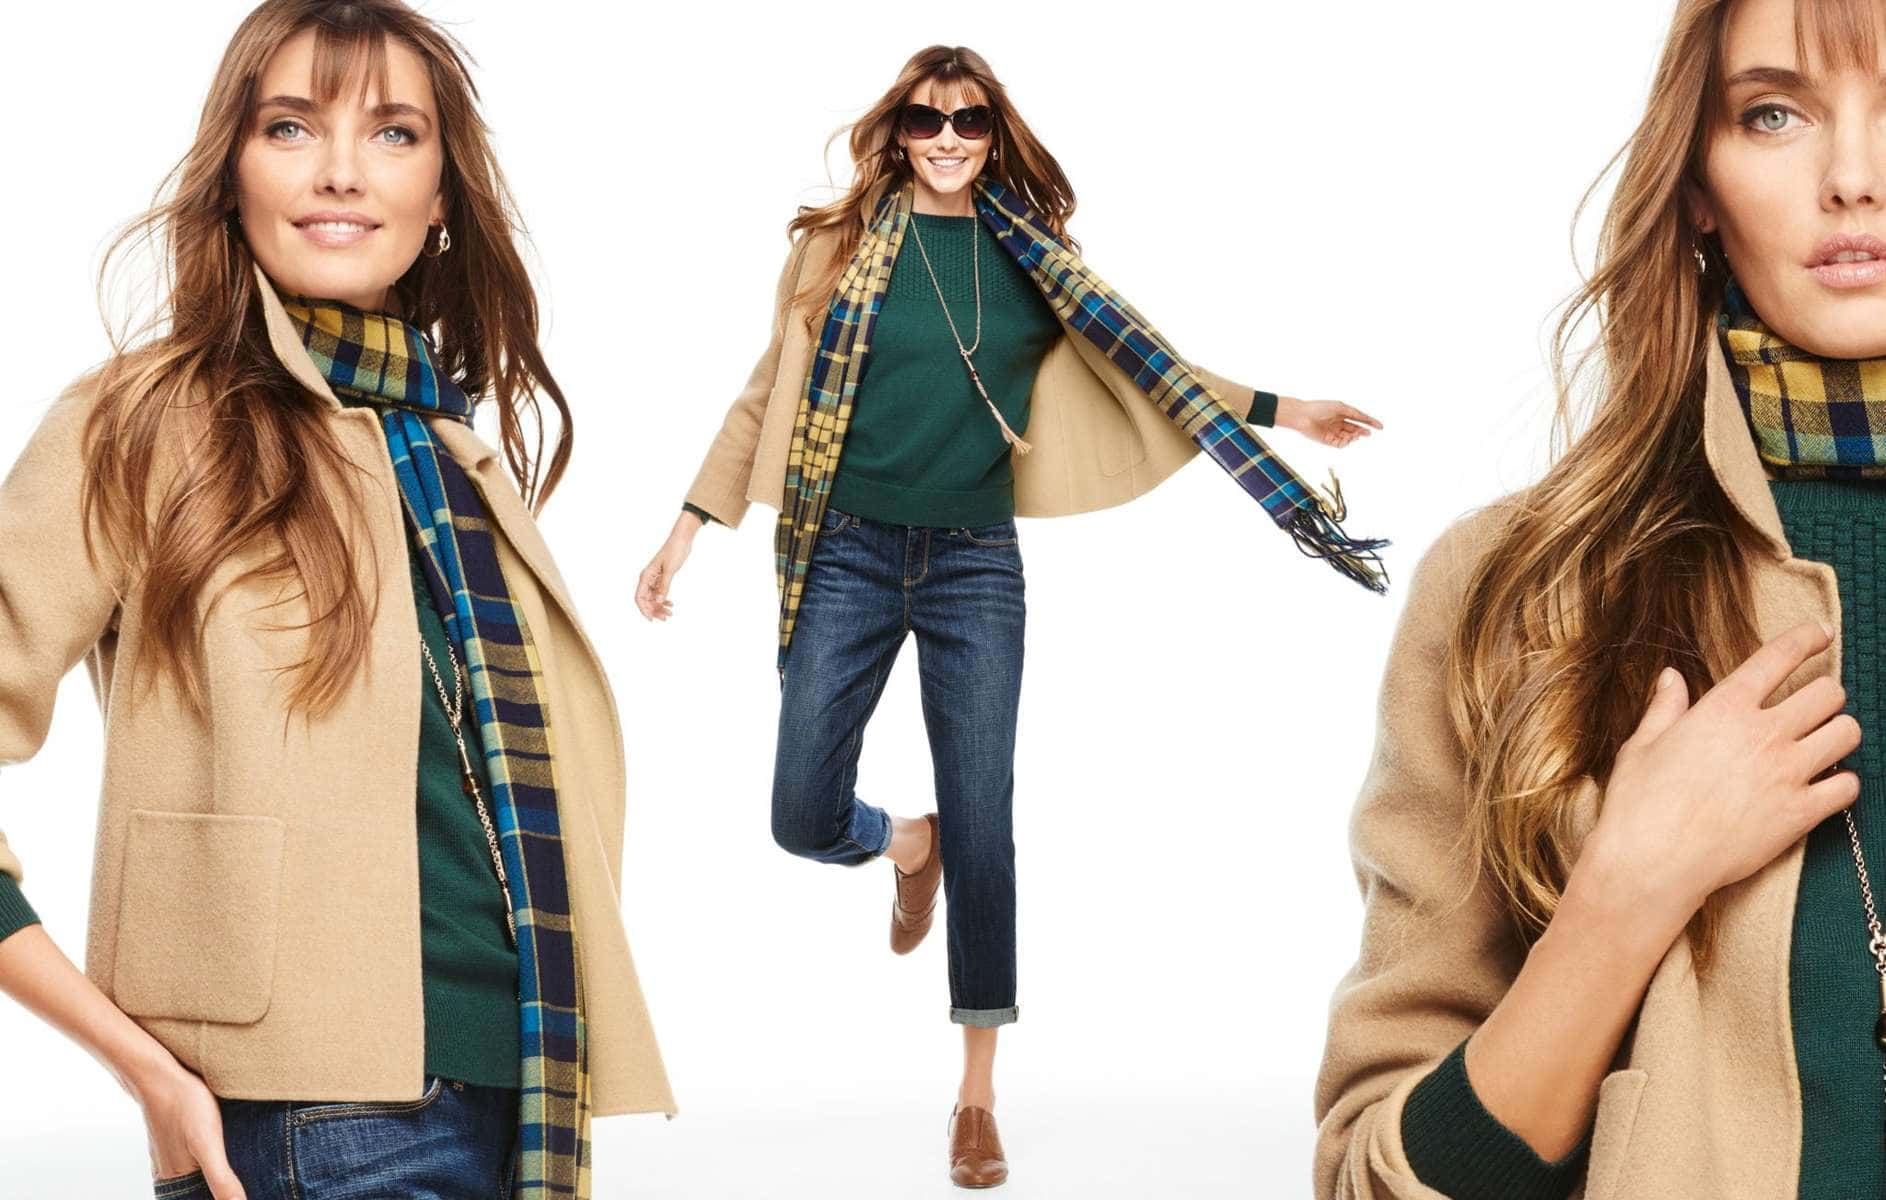 Talbots Fall 2015 Look Book Preview Featuring Camel, Green, and Denim with Plaid